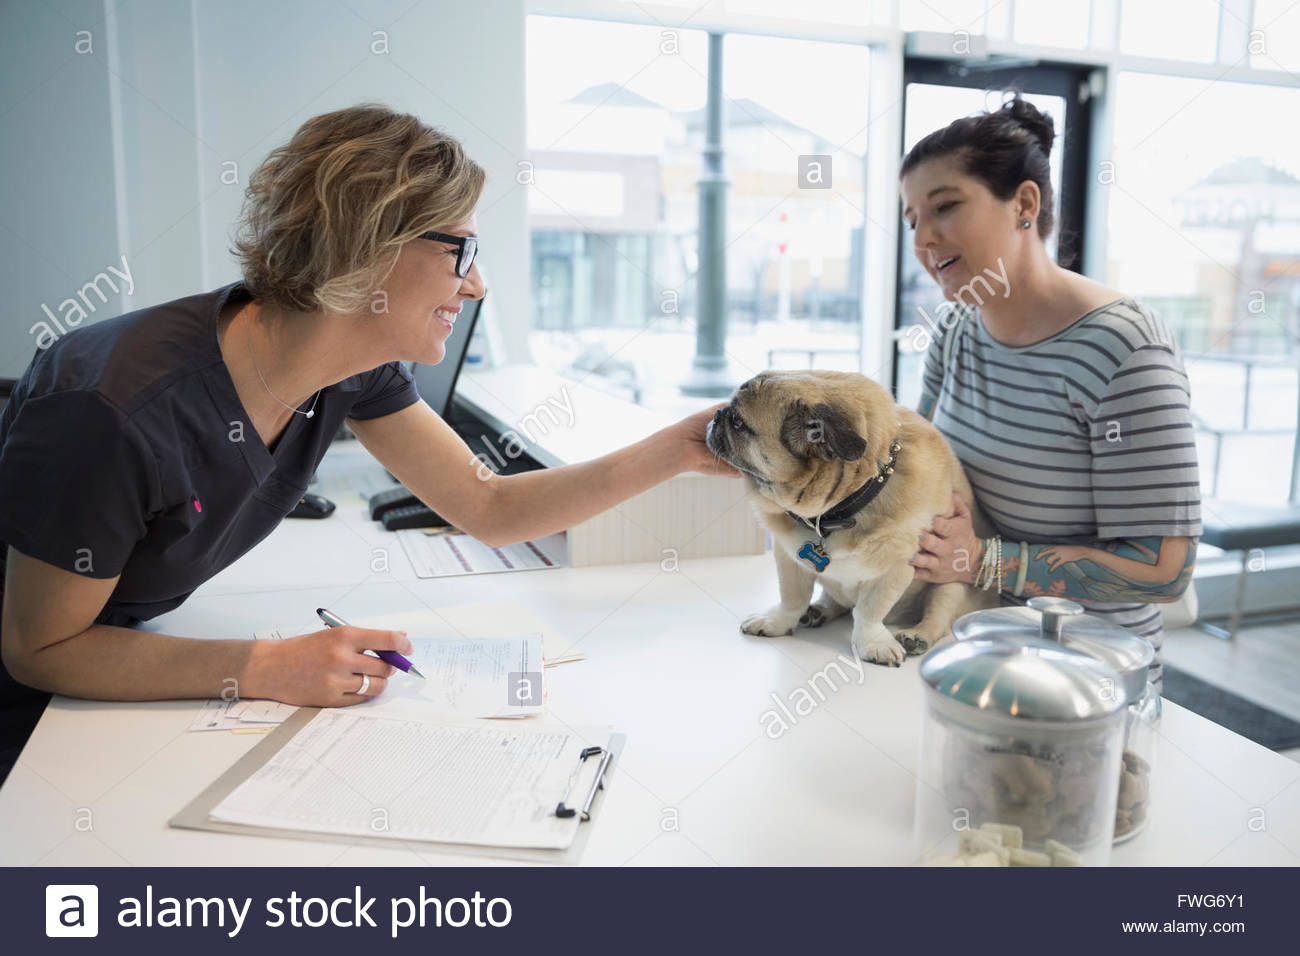 Veterinarian greeting woman with dog at clinic reception - Stock Image